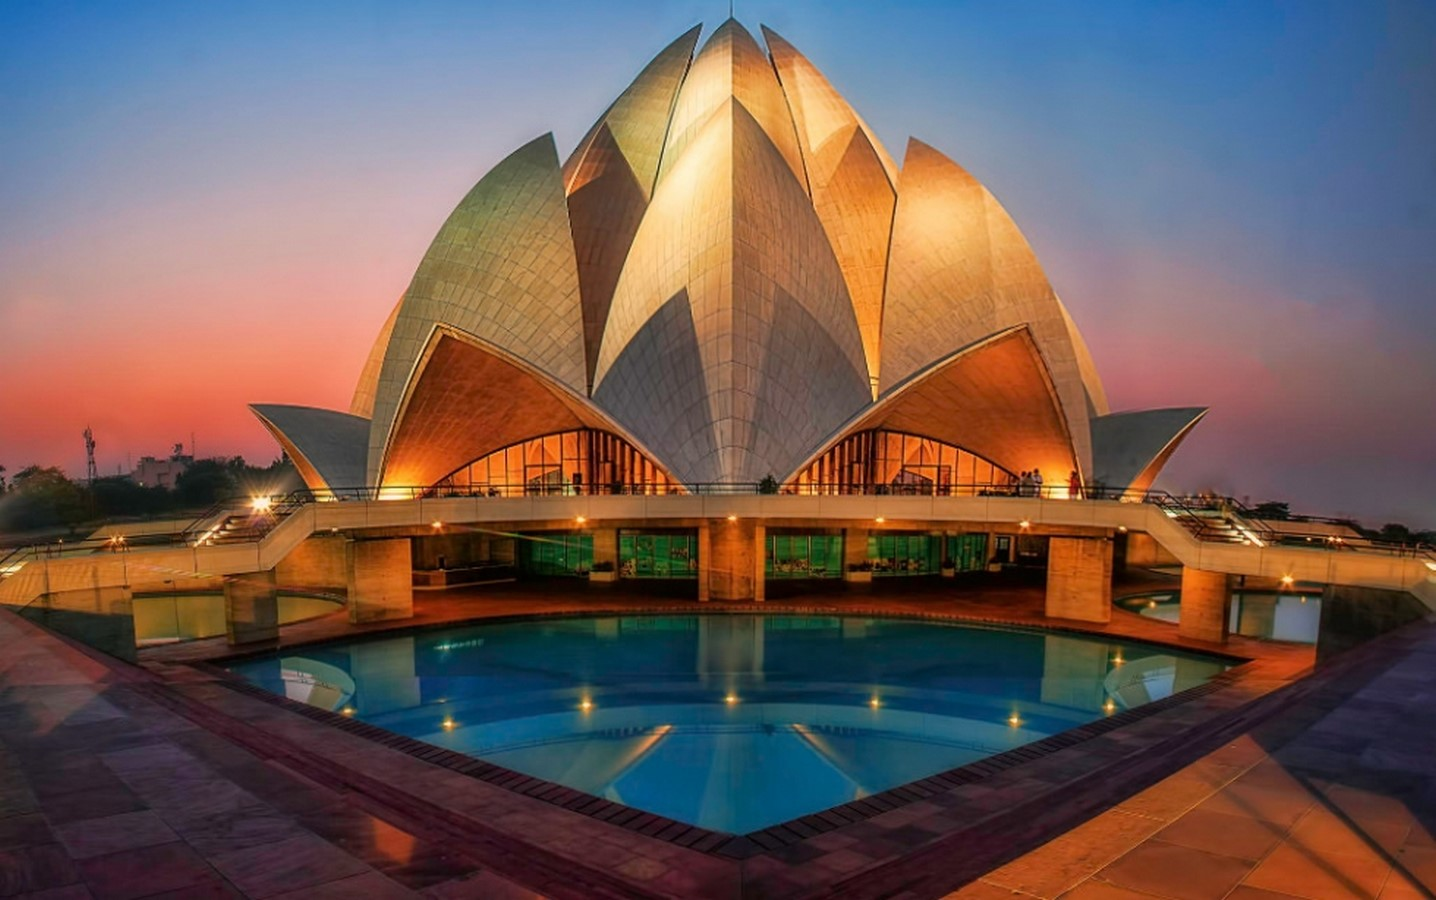 10 Things you did not know about The Lotus Temple - New Delhi - Sheet1